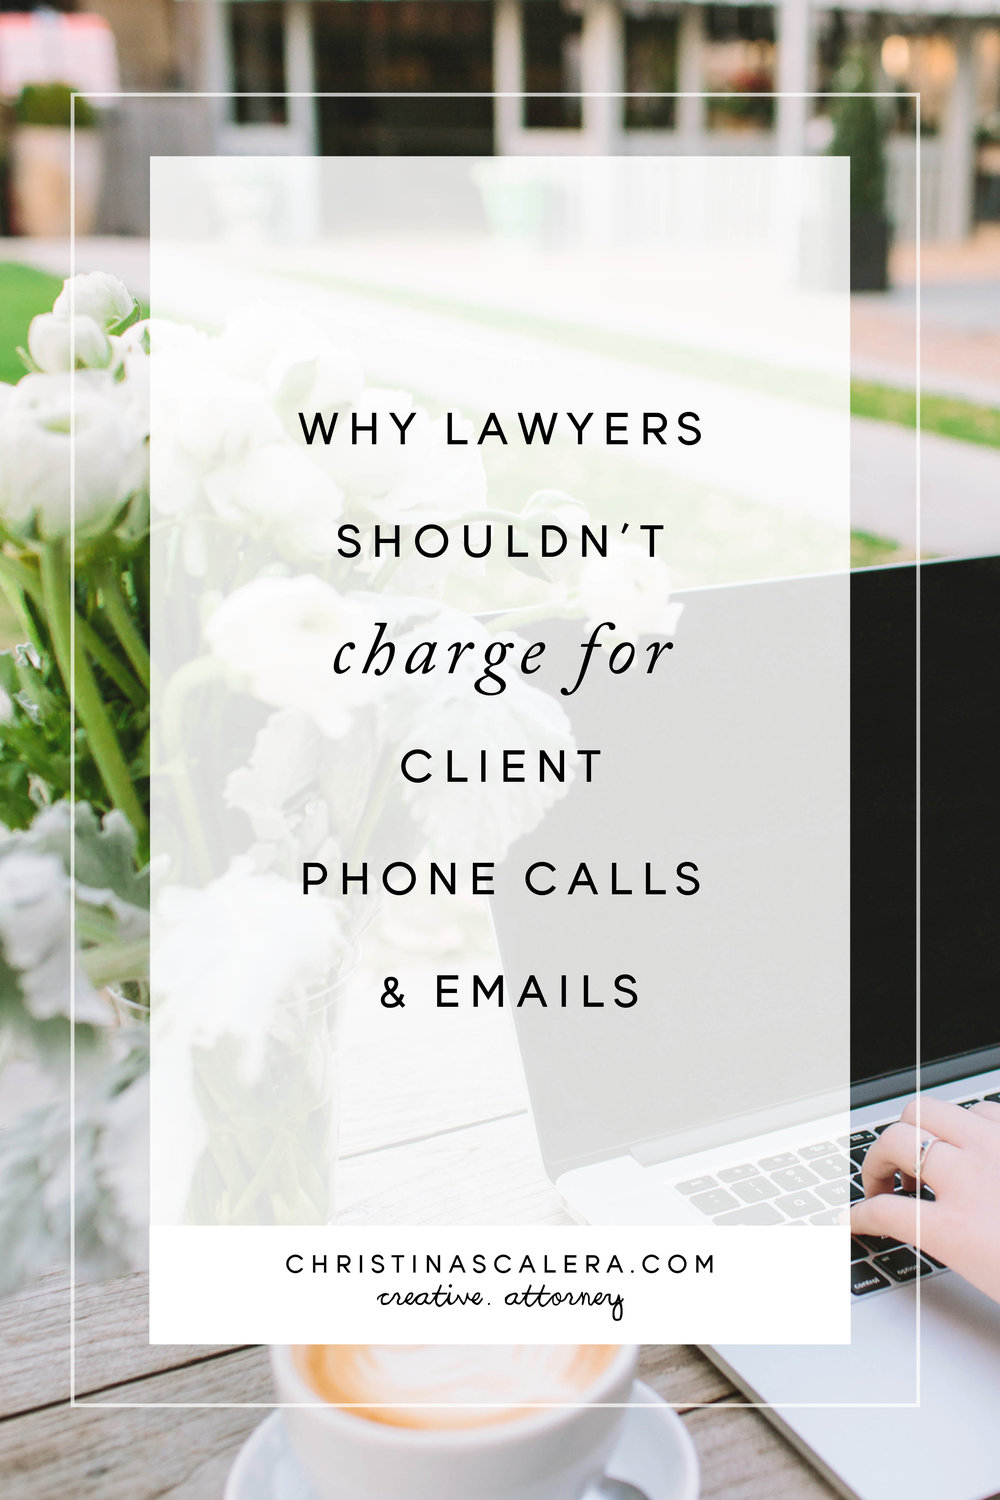 Why lawyers shouldn't charge for client phone calls and emails.